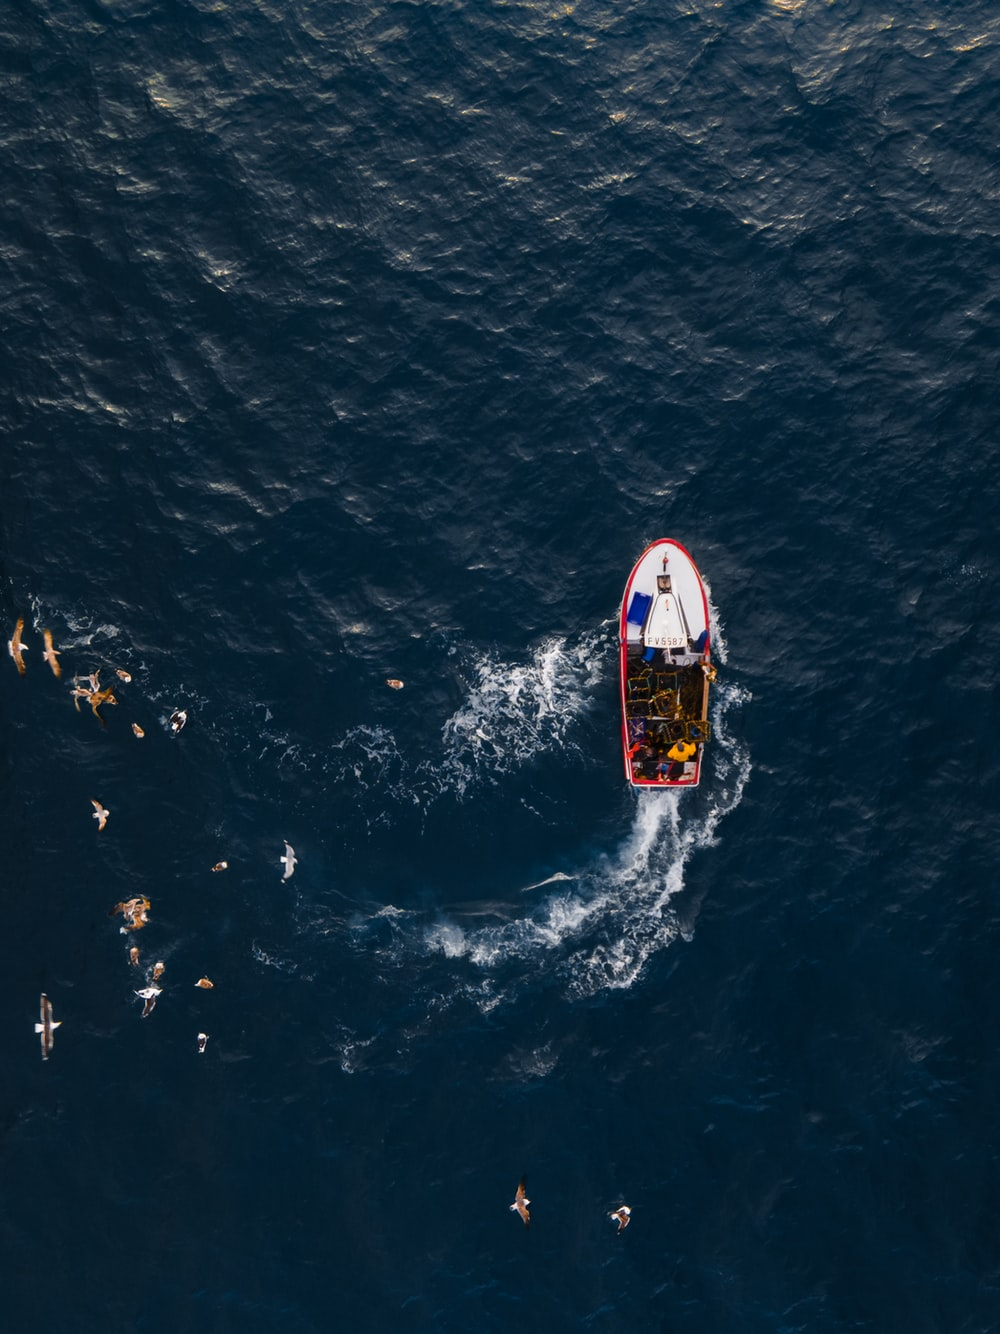 red and white boat on blue sea during daytime